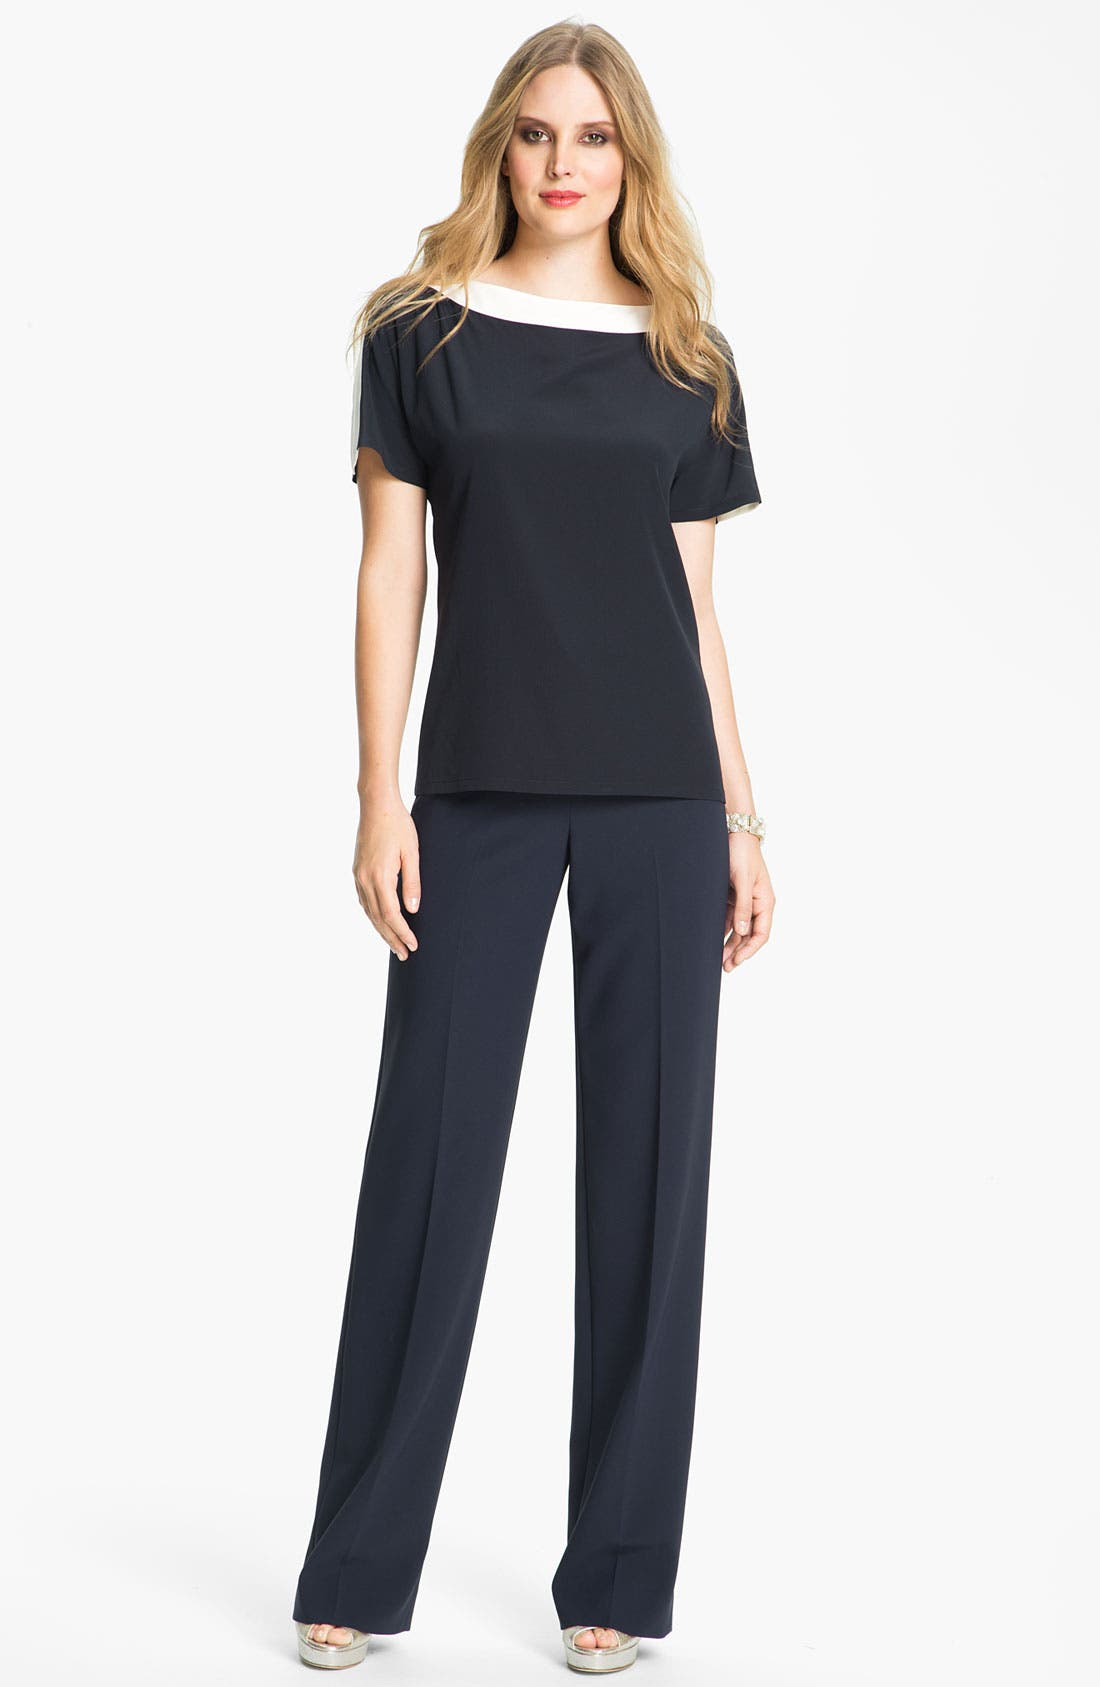 Alternate Image 1 Selected - St. John Collection Blouse & Pants